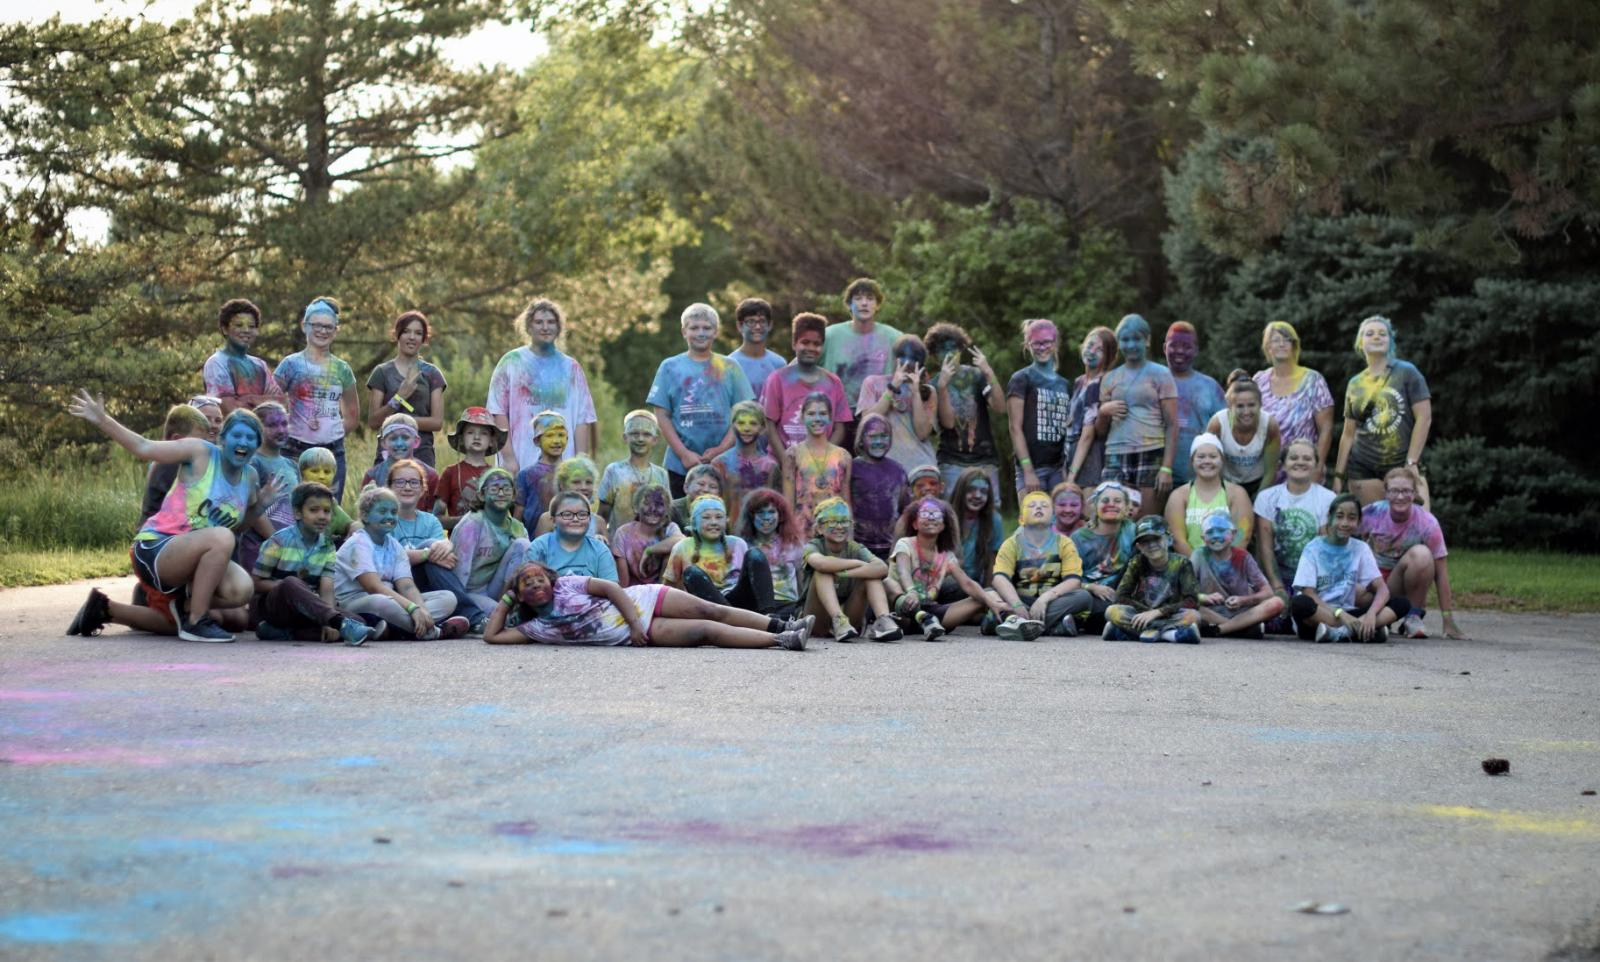 campers covered in colored powder making silly faces